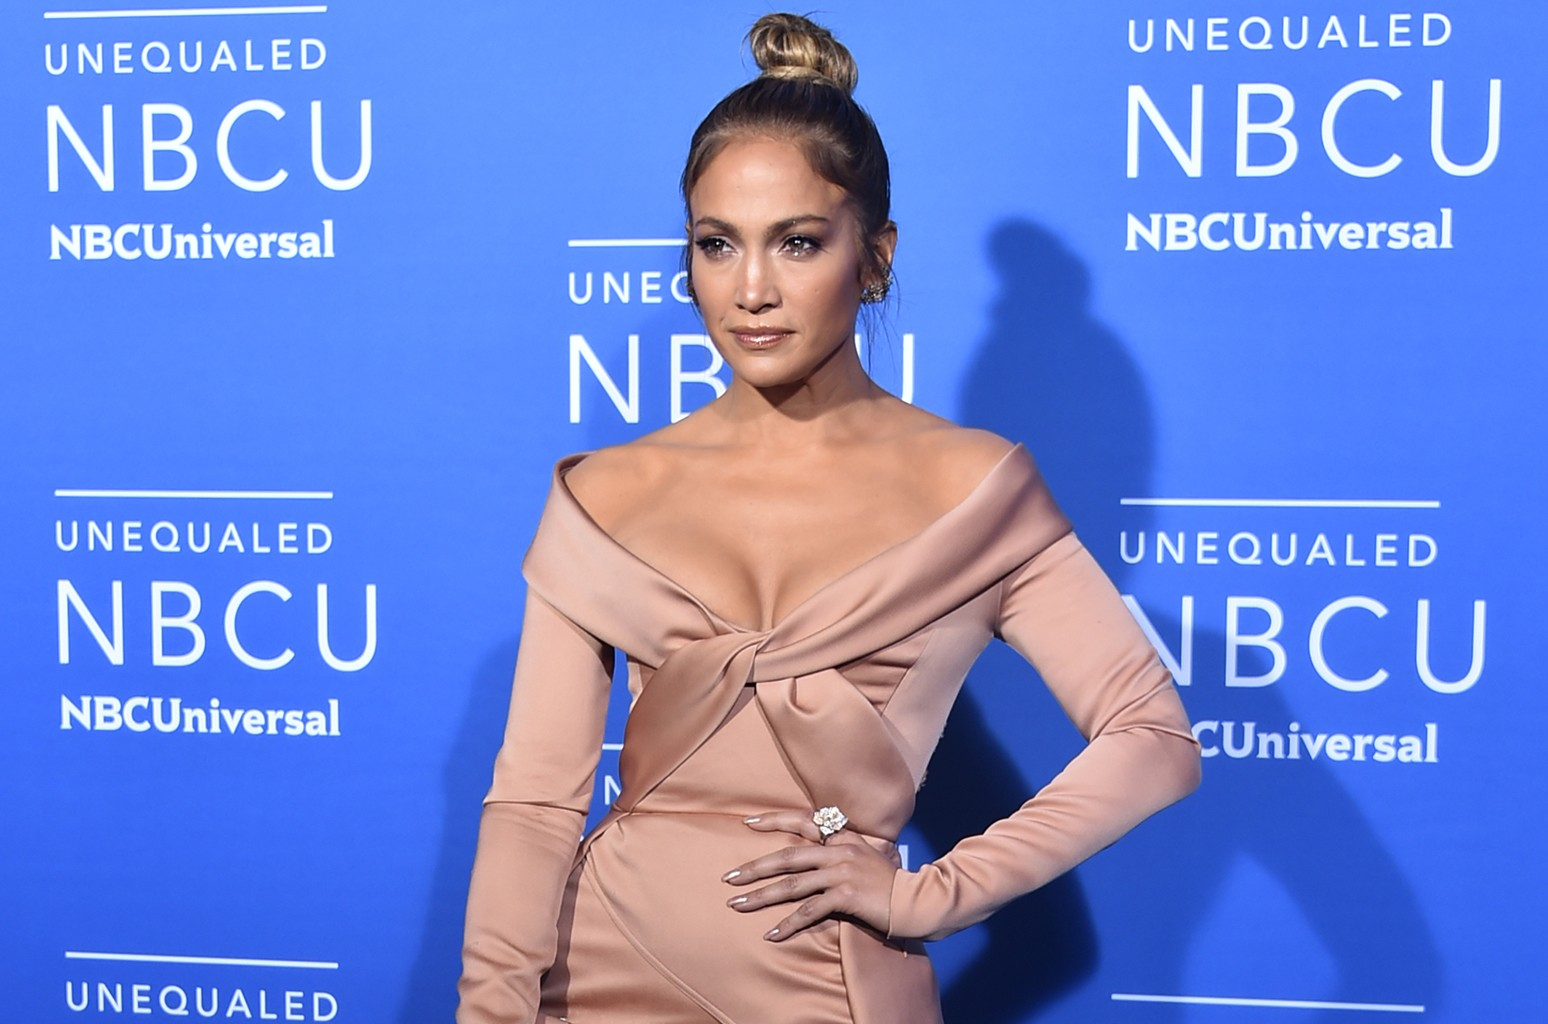 Jennifer Lopez at the 2017 NBCUniversal Upfront in New York City on May 15, 2017.